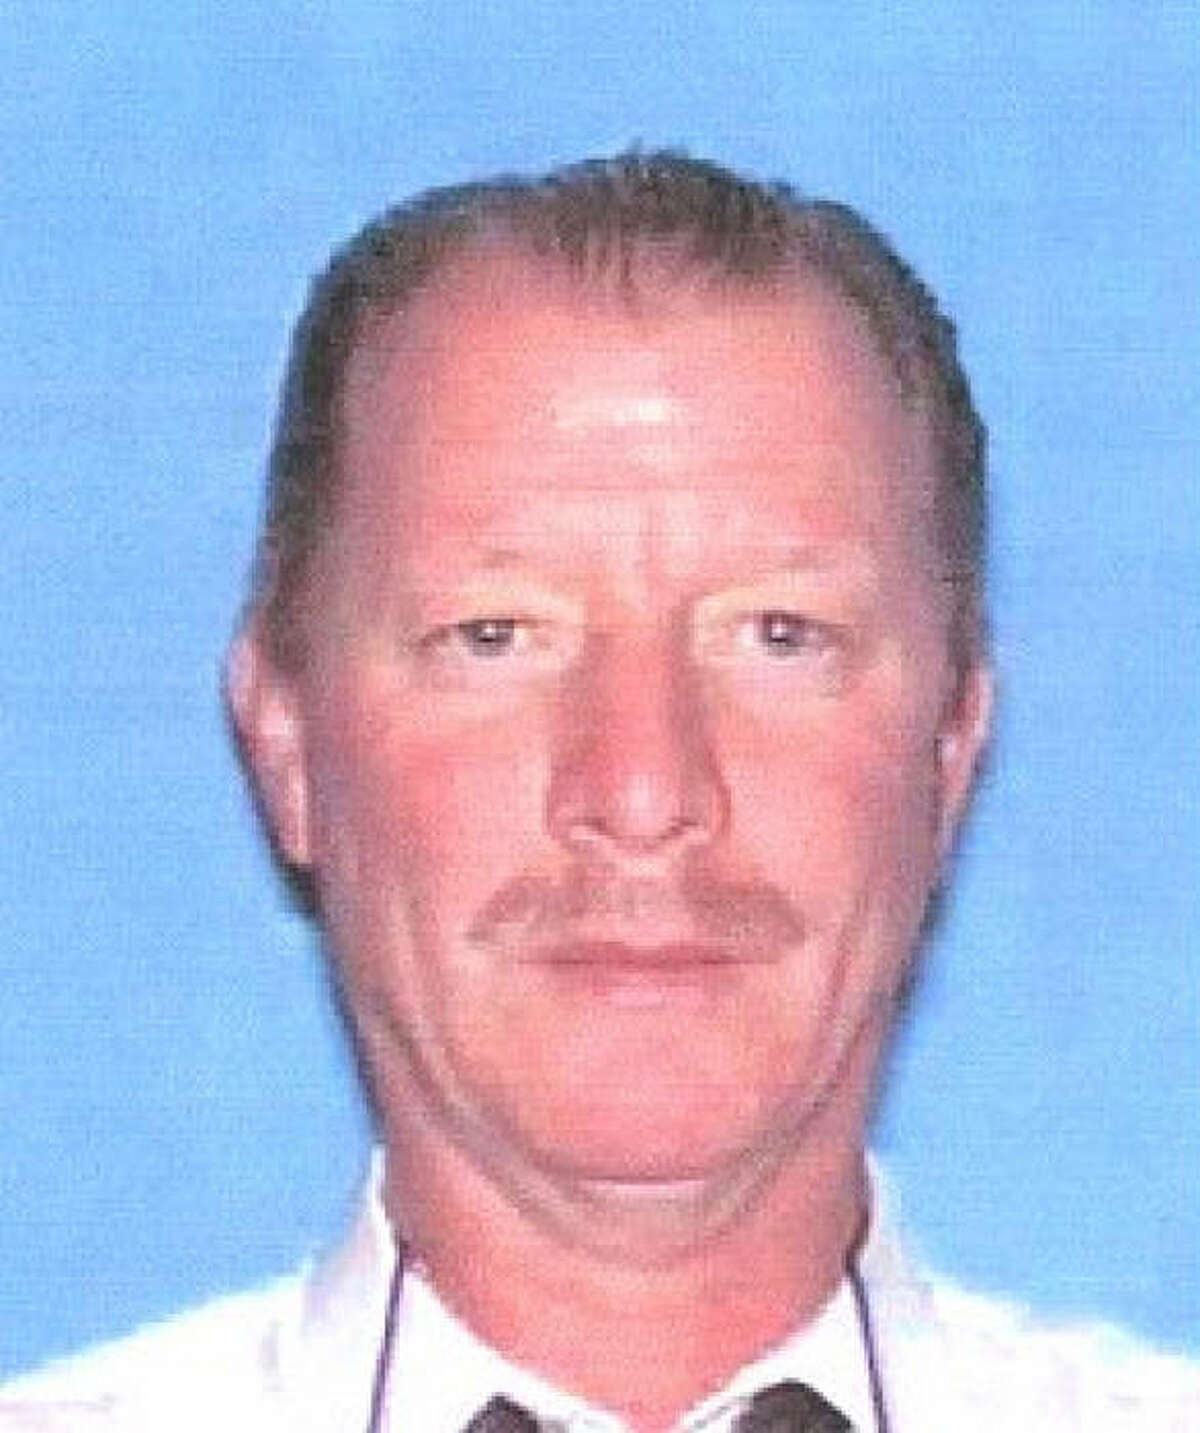 Billy Waterman of Indian Wells (Riverside County), wanted for questioning in the slaying of his wife, whose body was found Friday in a San Francisco motel.